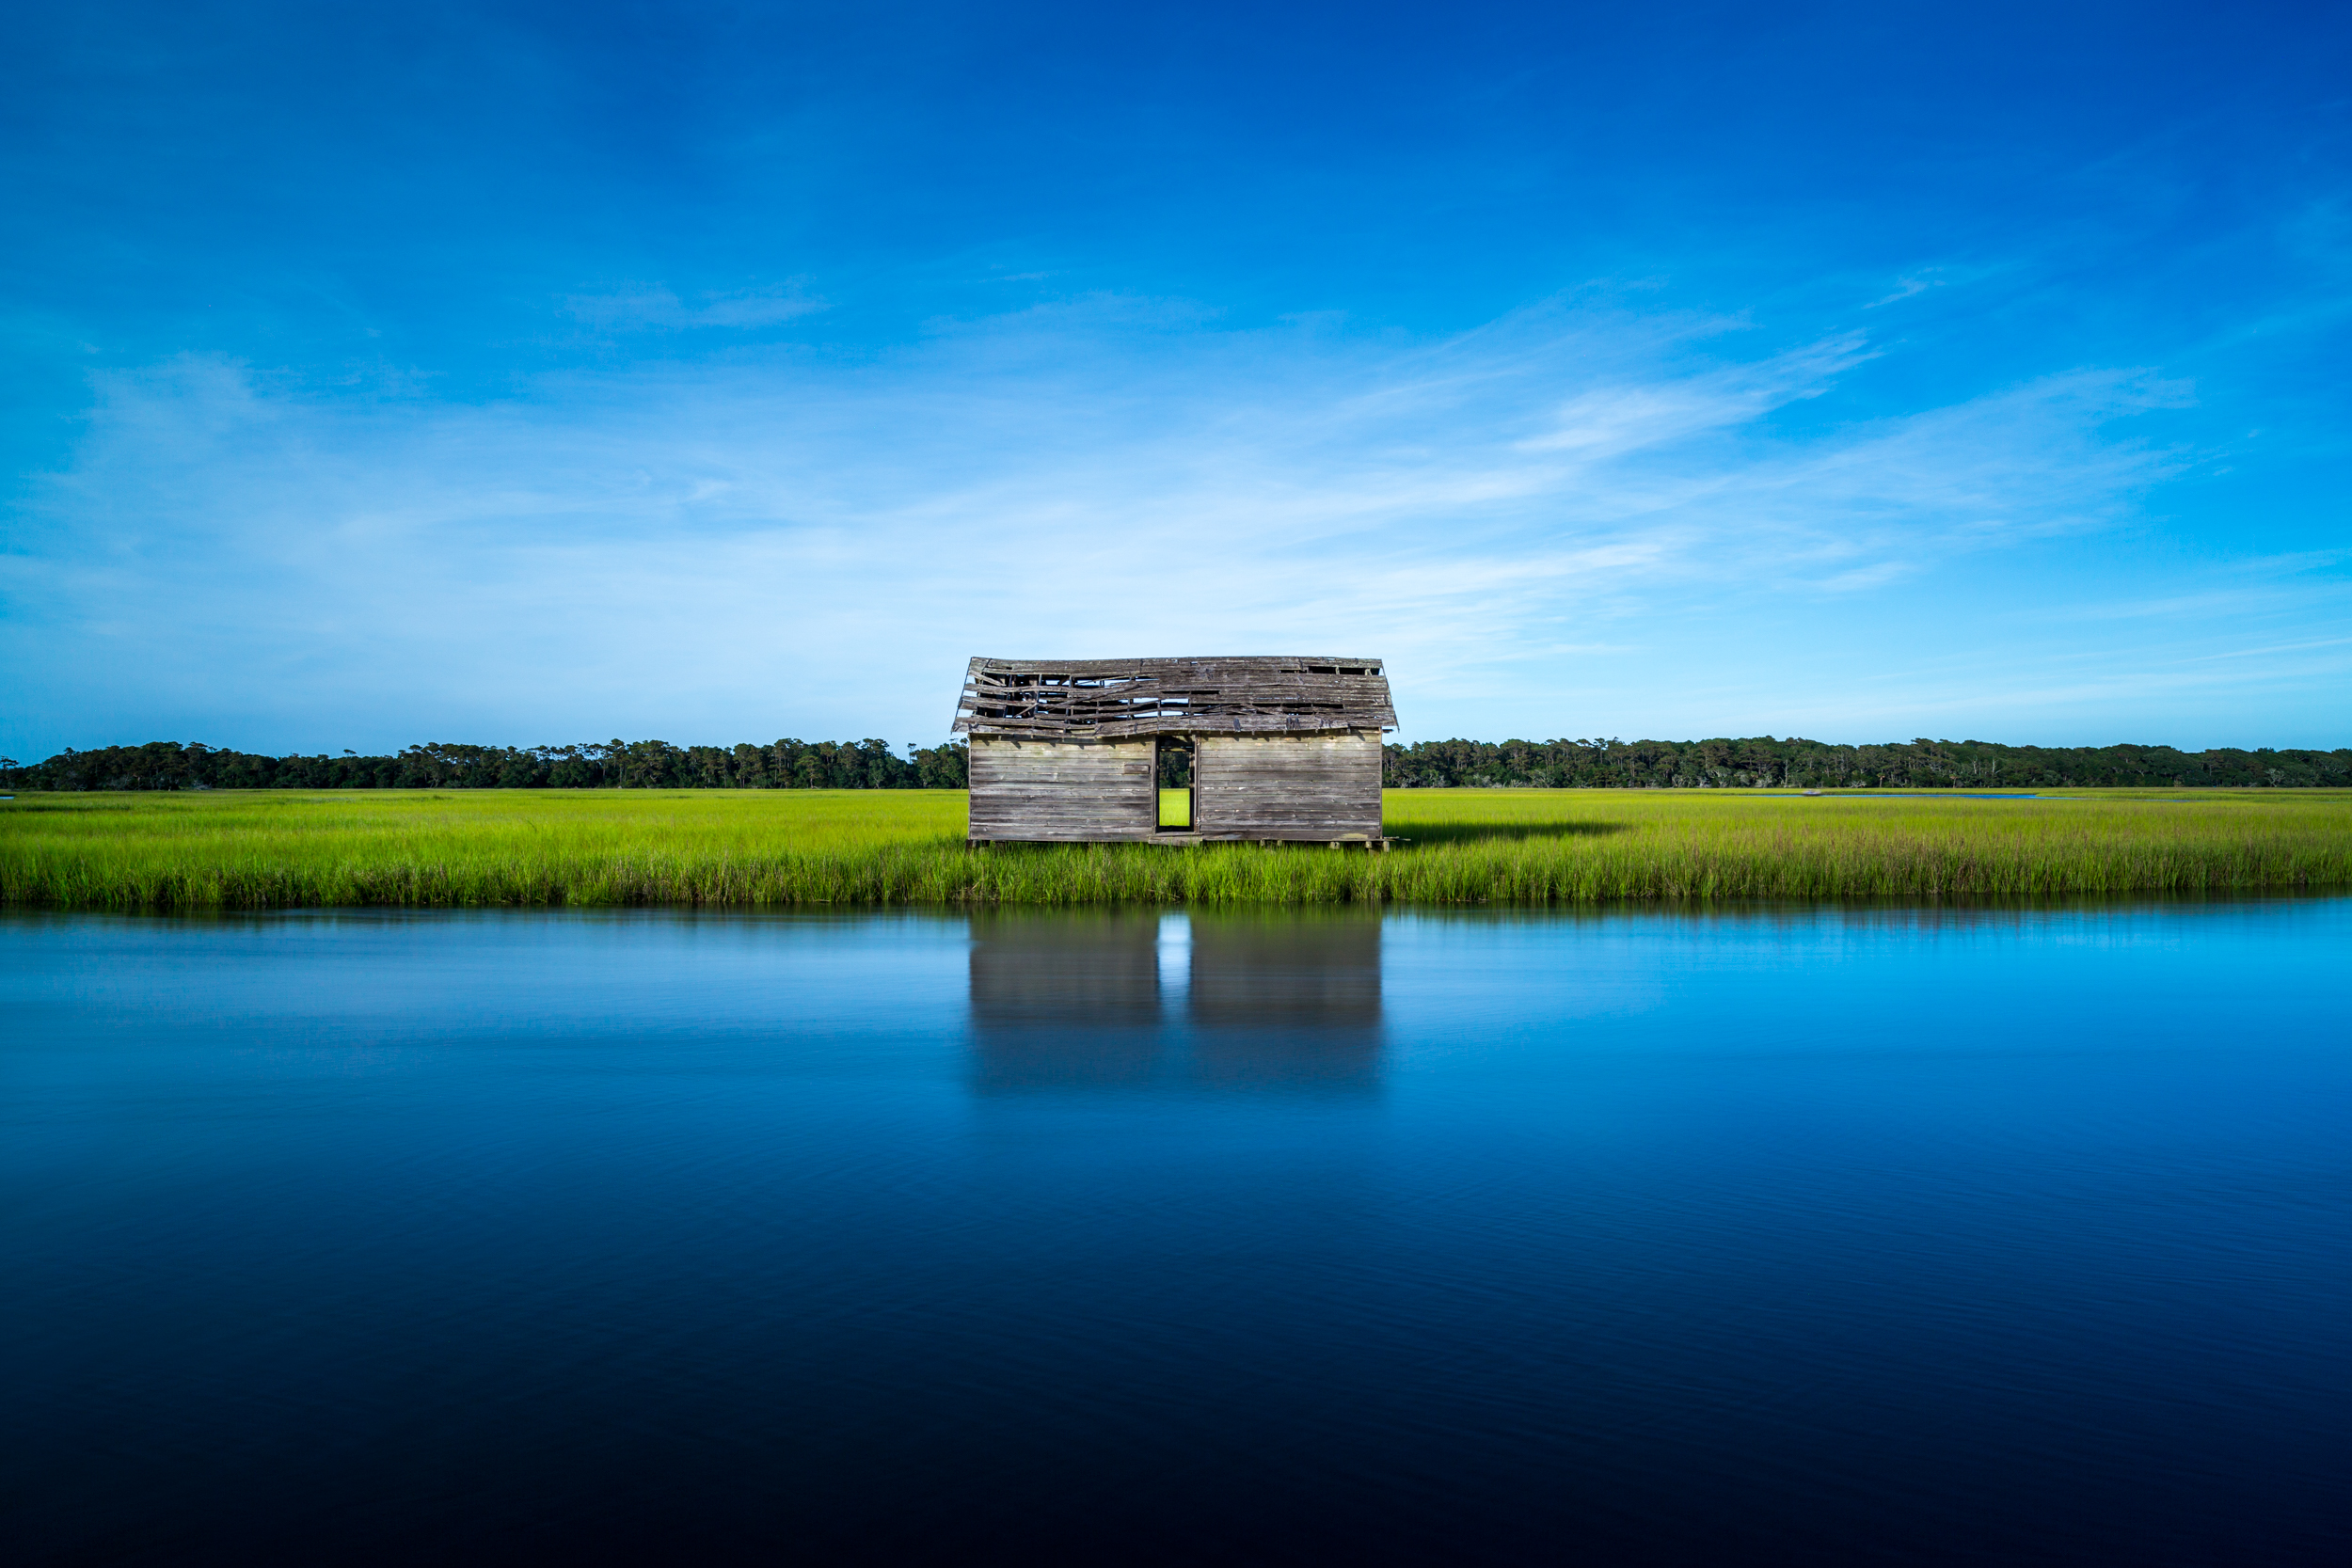 Baldhead Island Boathouse, North Carolina